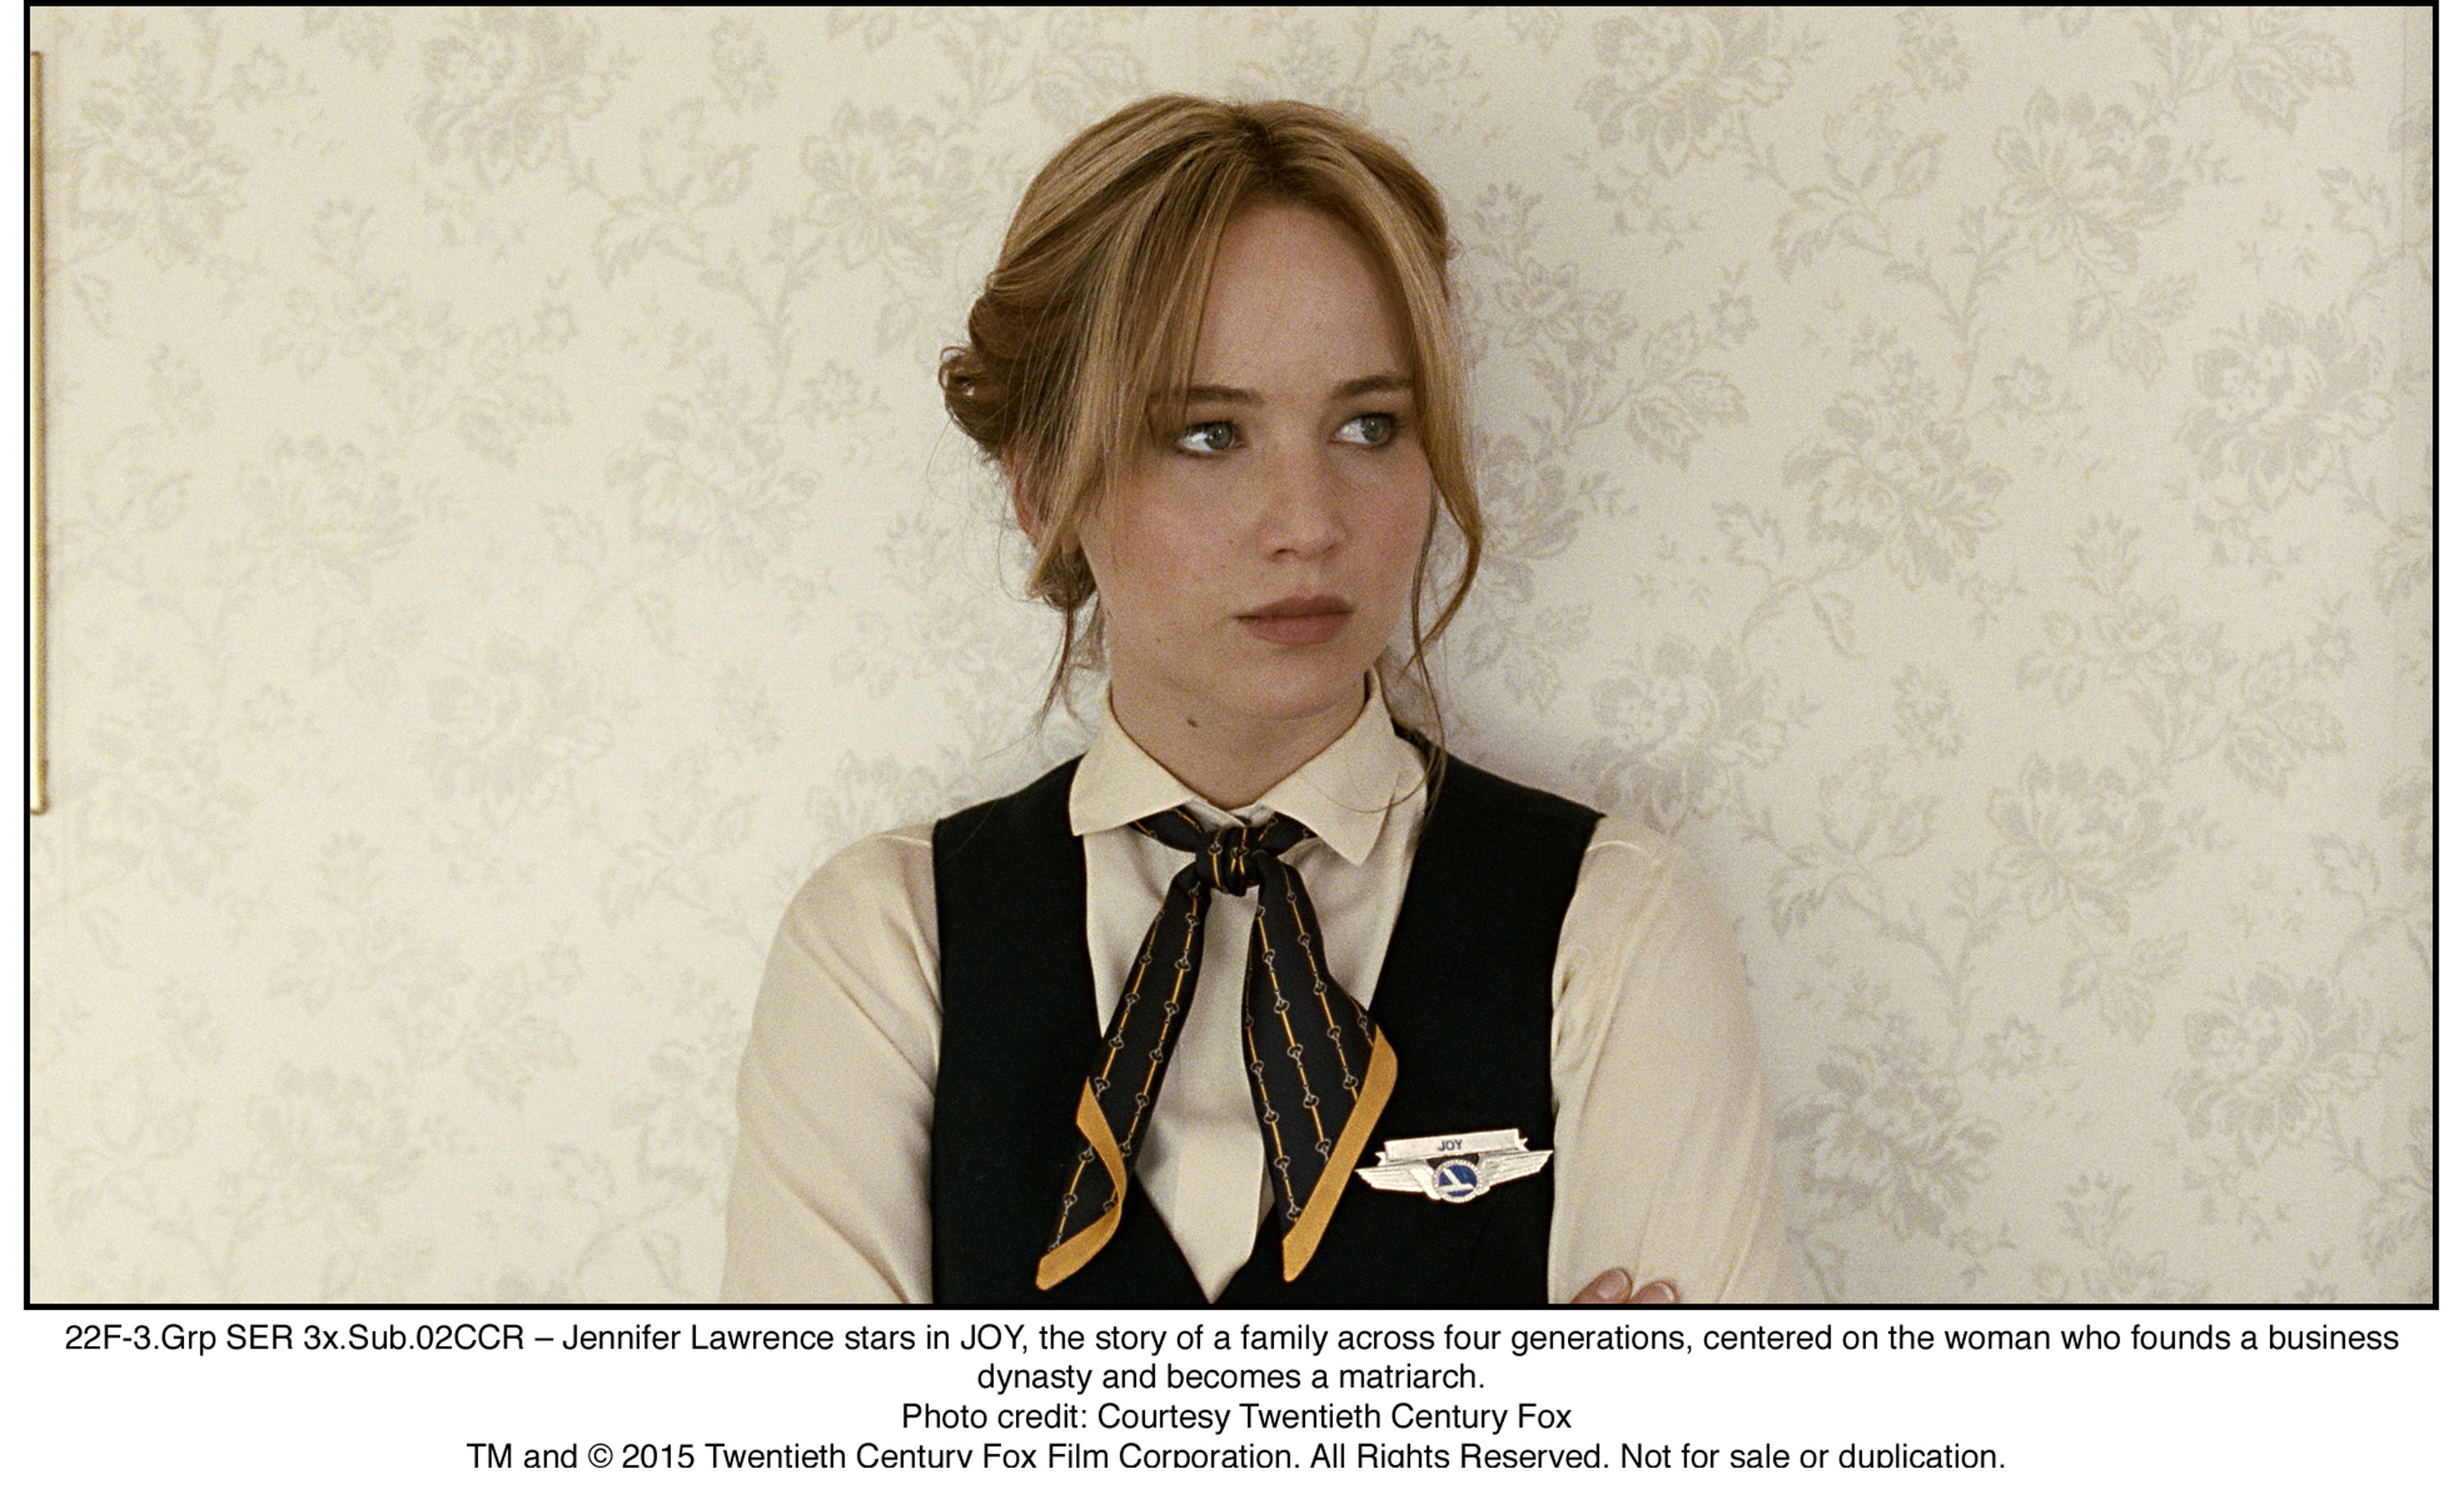 22F-3.Grp SER 3x.Sub.02CCR – Jennifer Lawrence stars in JOY, the story of a family across four generations, centered on the woman who founds a business dynasty and becomes a matriarch.